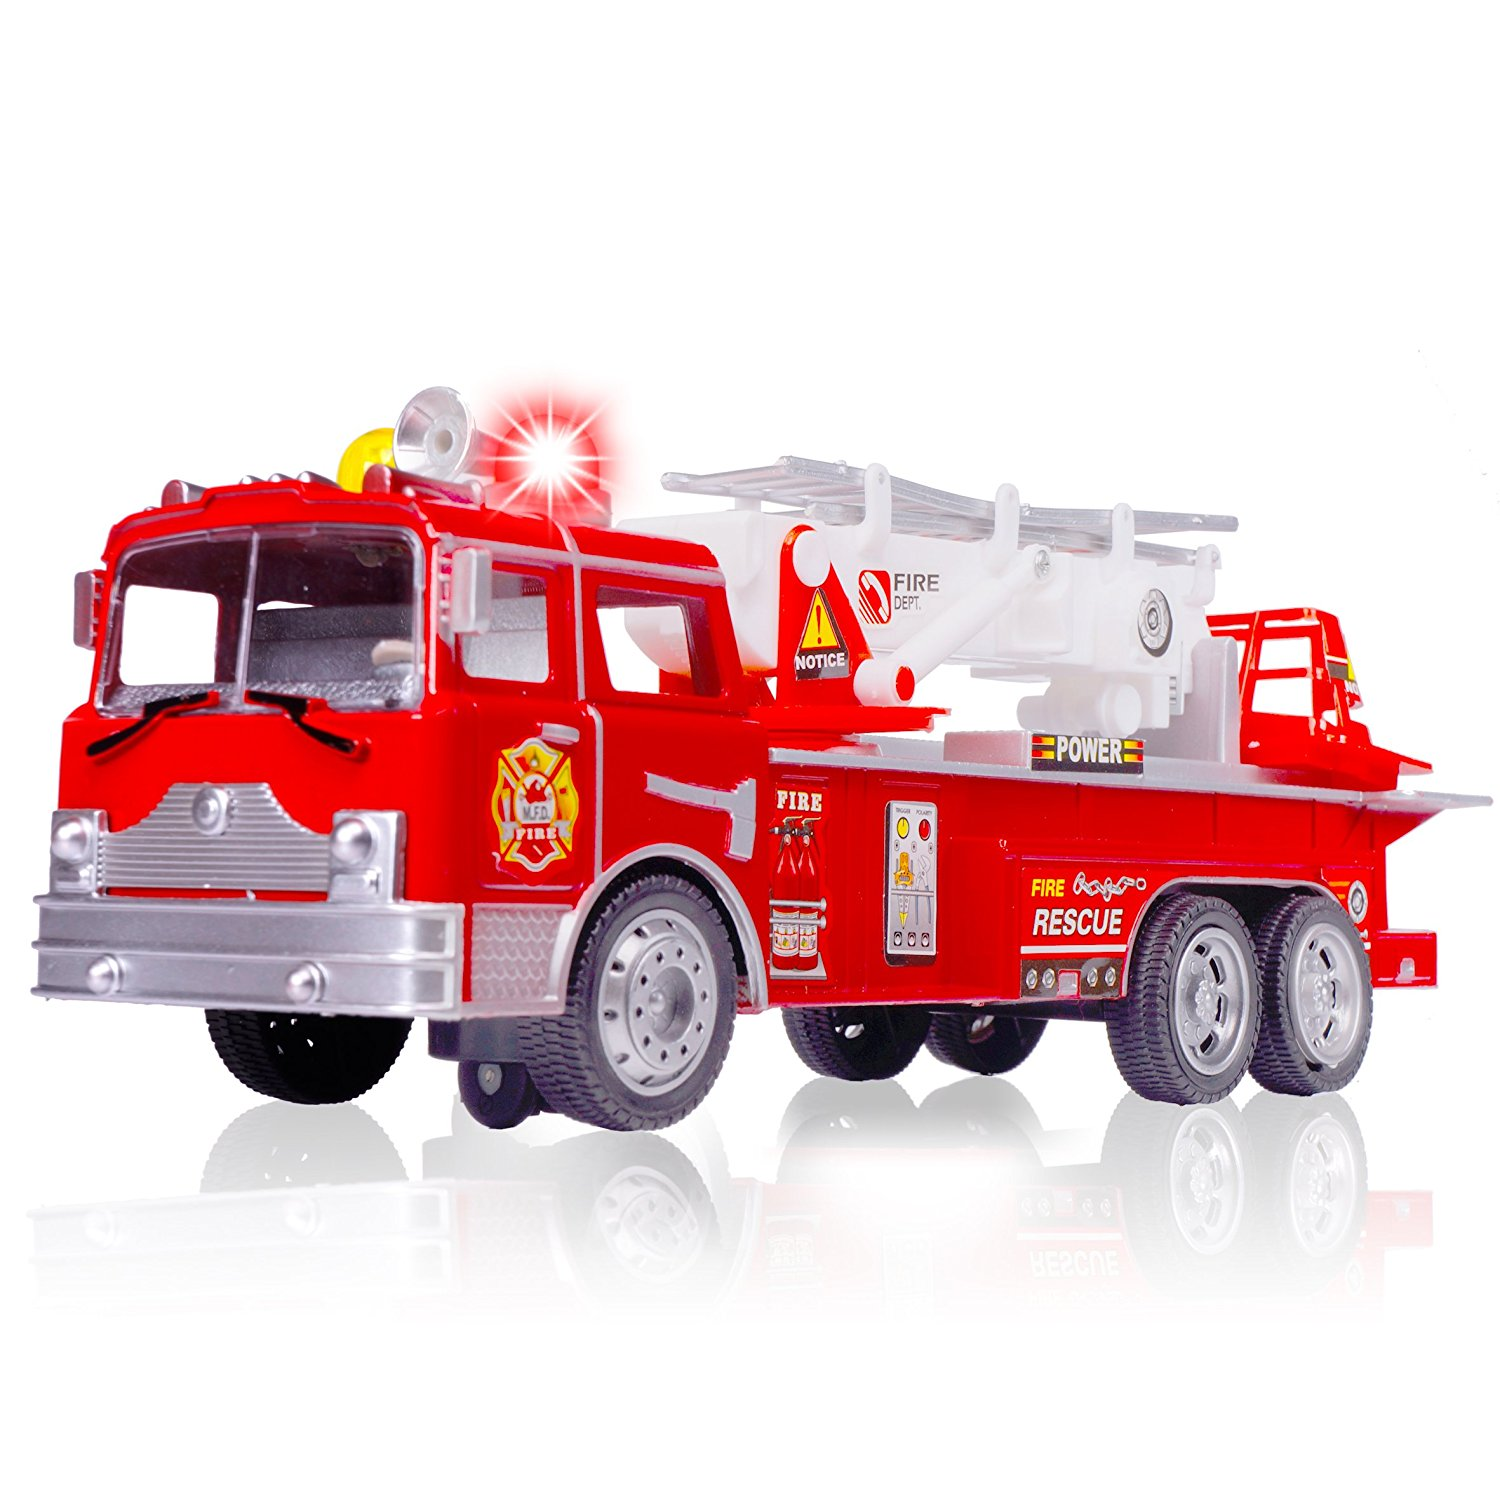 CifToys Amazing Fire Engine Truck Kids Toy: Best Large Bump & Go Rescue SOS  Car With Realistic Siren Sounds & Extending Ladder-Unique Gift For